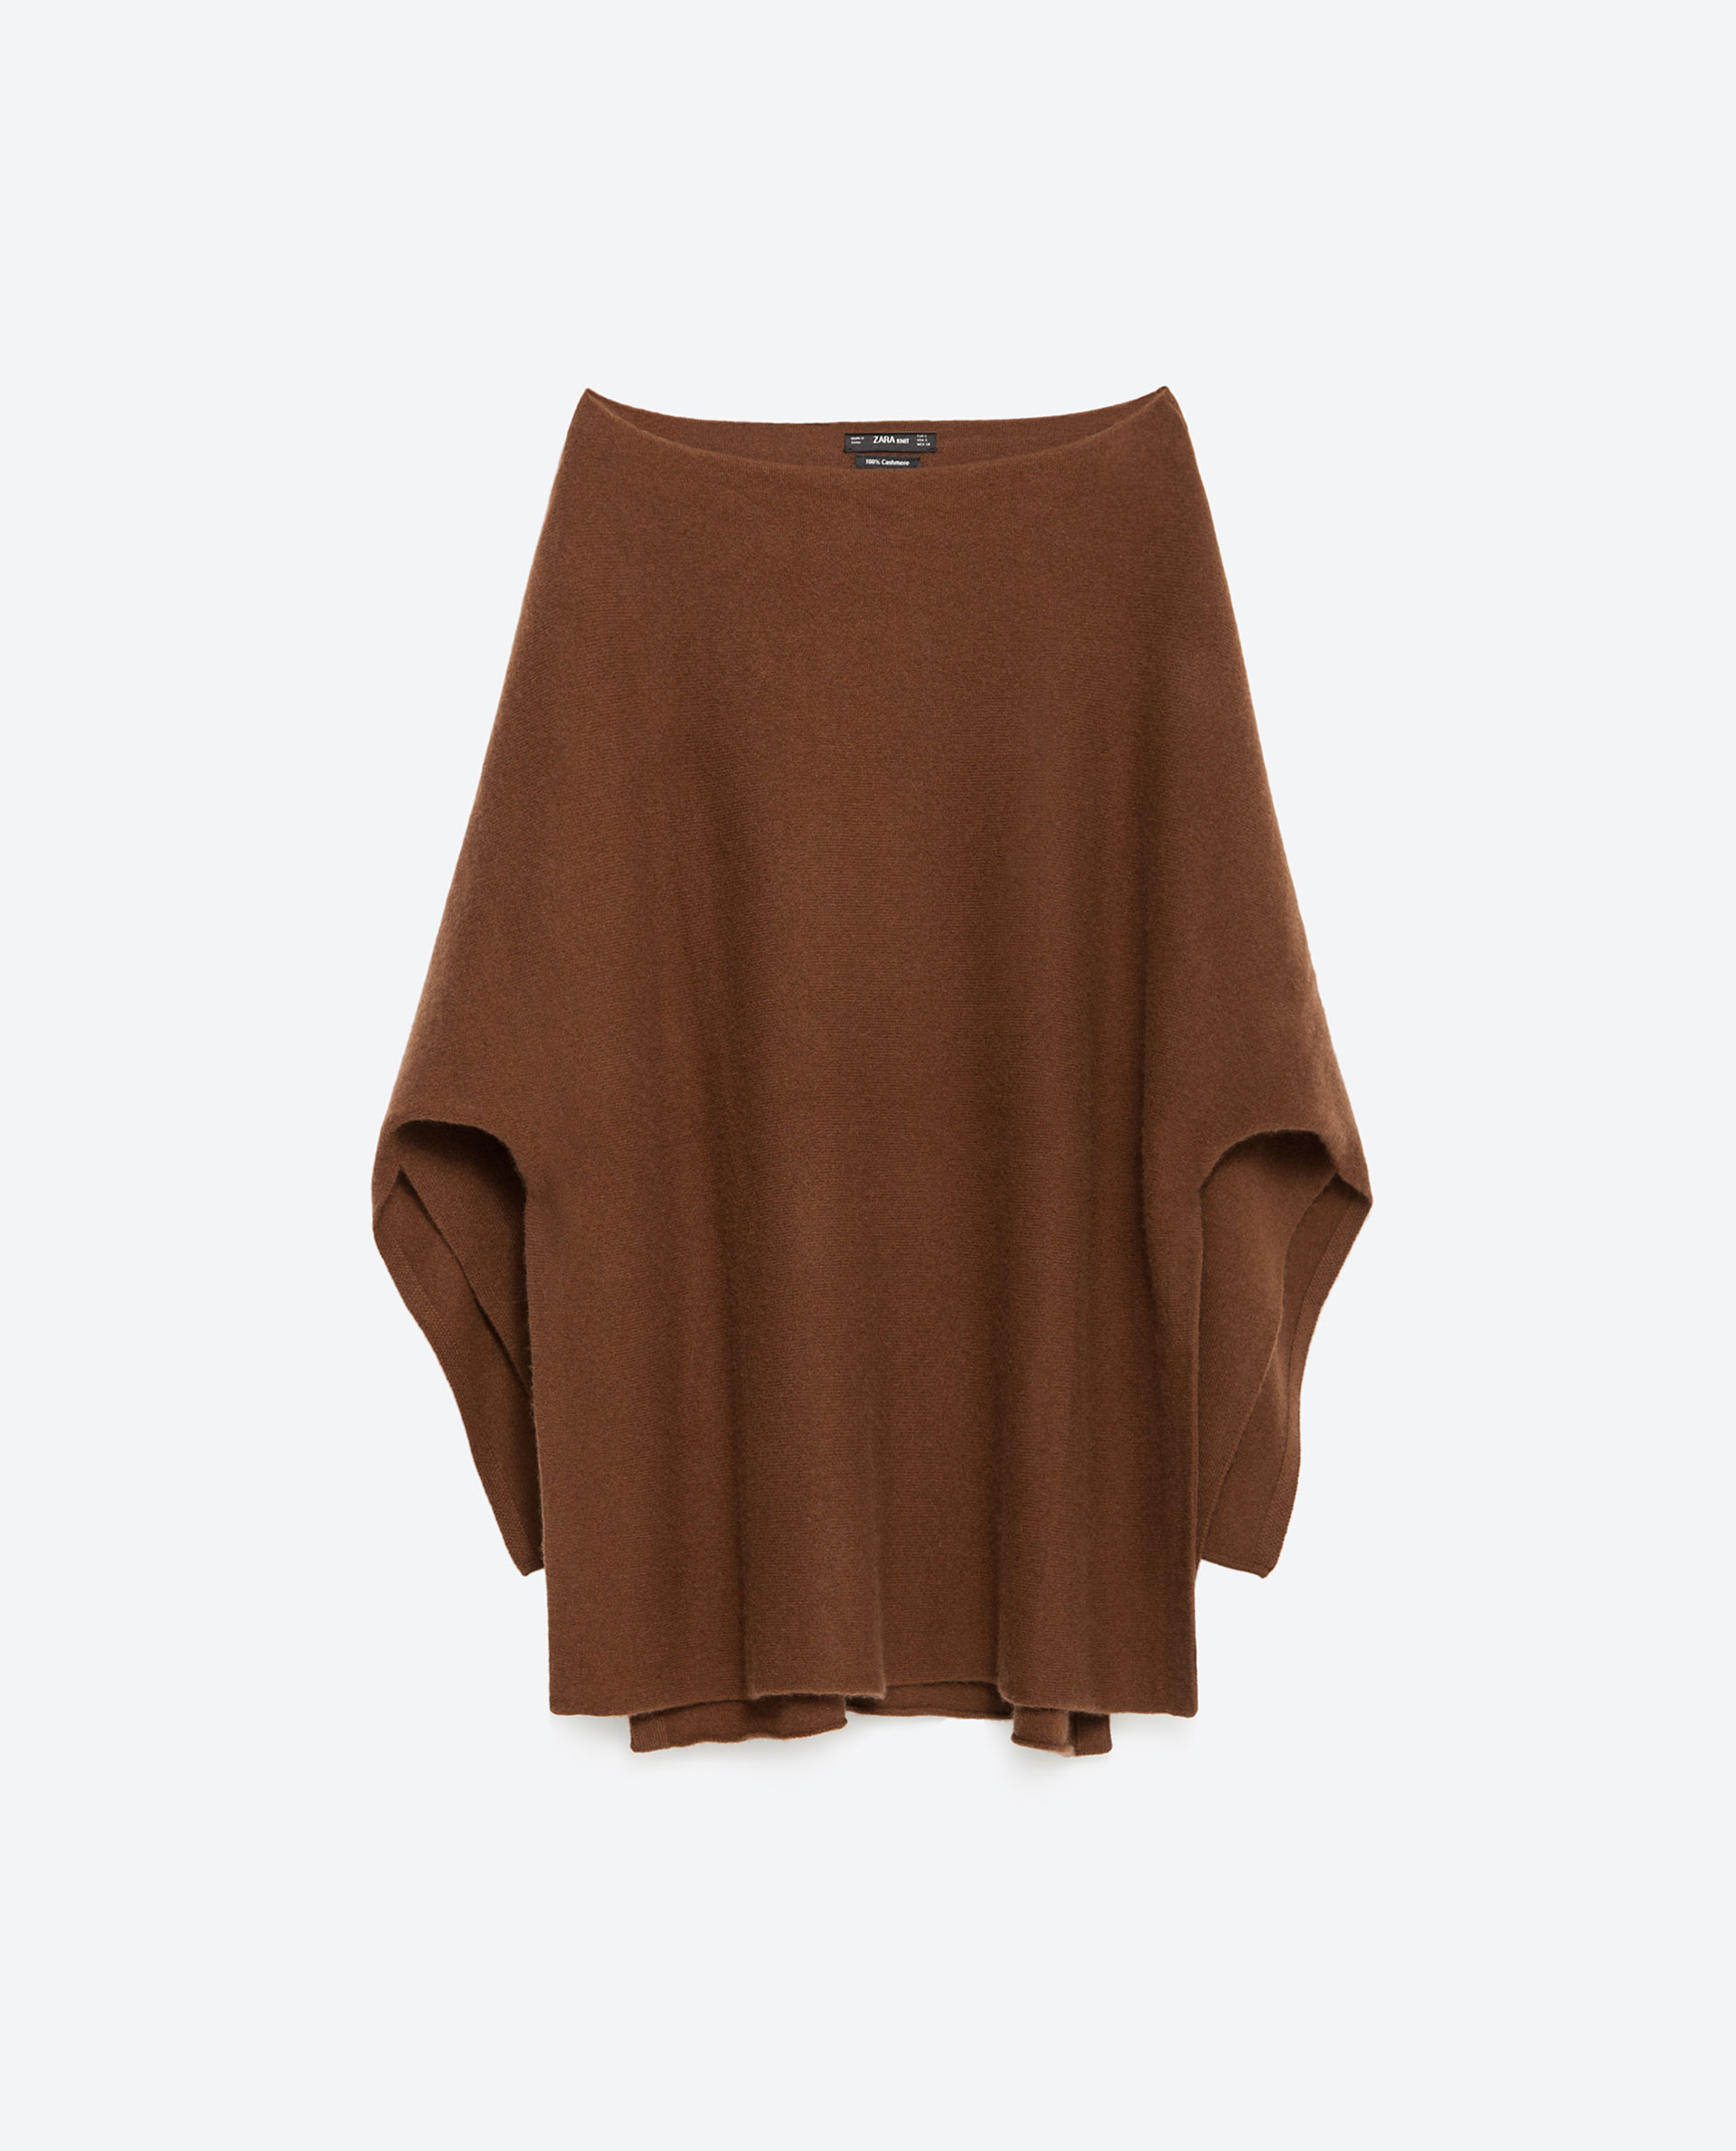 20 of Fall's Best Sweaters, From Jacquemus to Zara